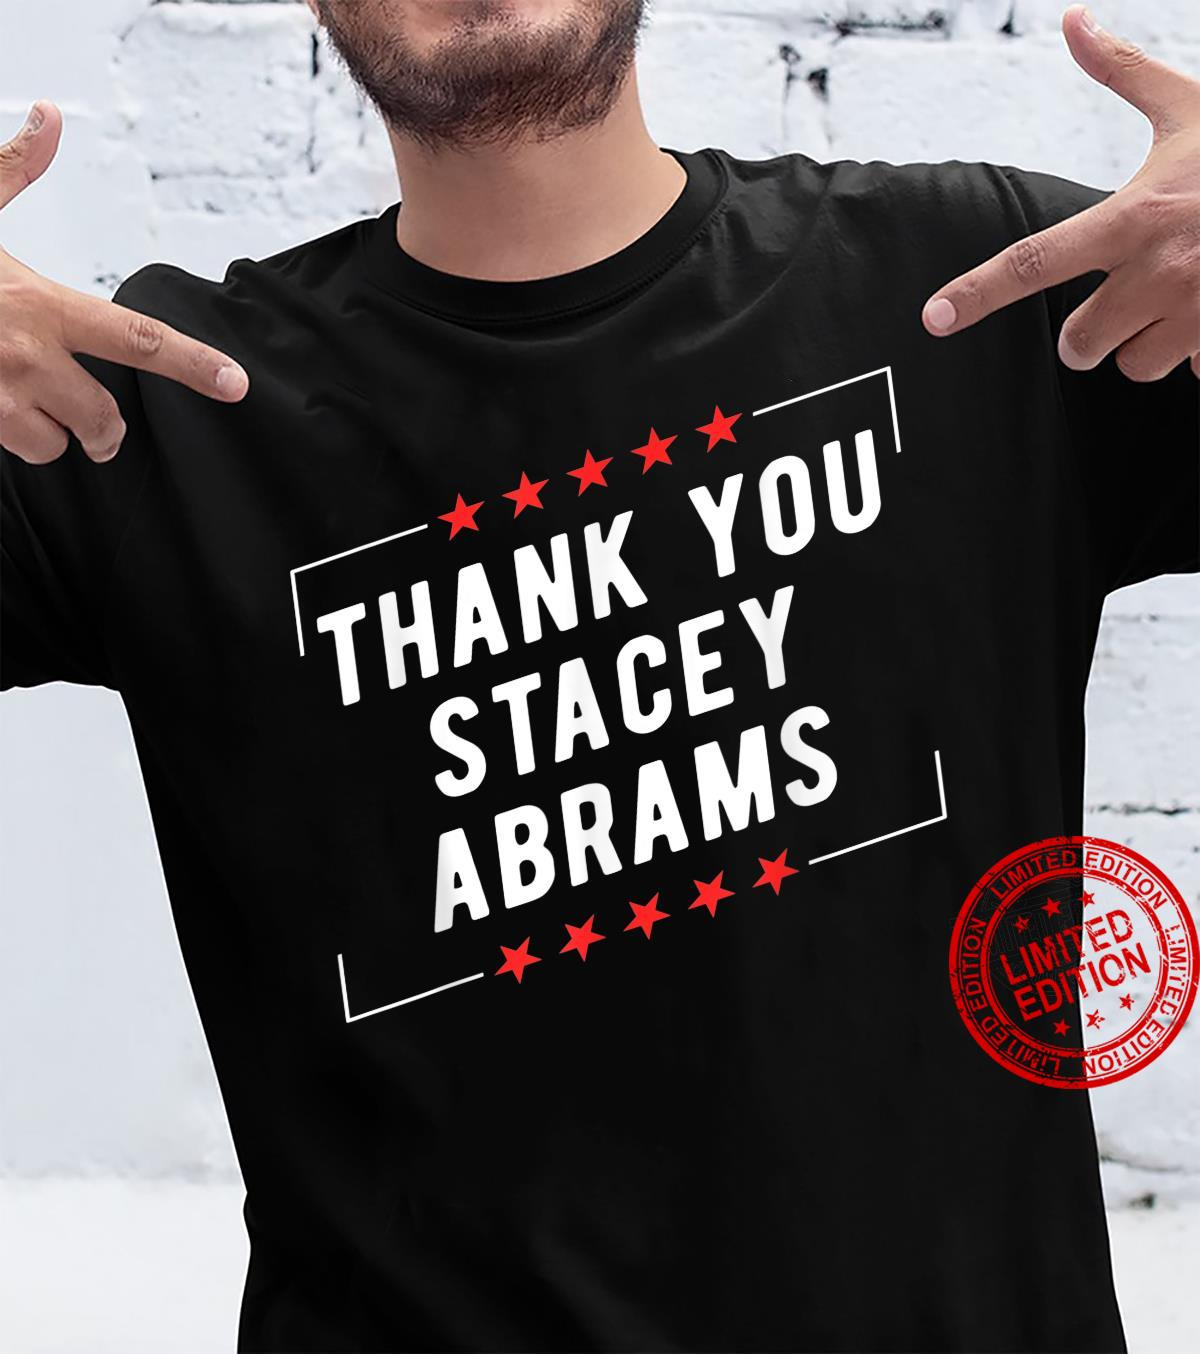 Thank You Stacey Abrams Shirt